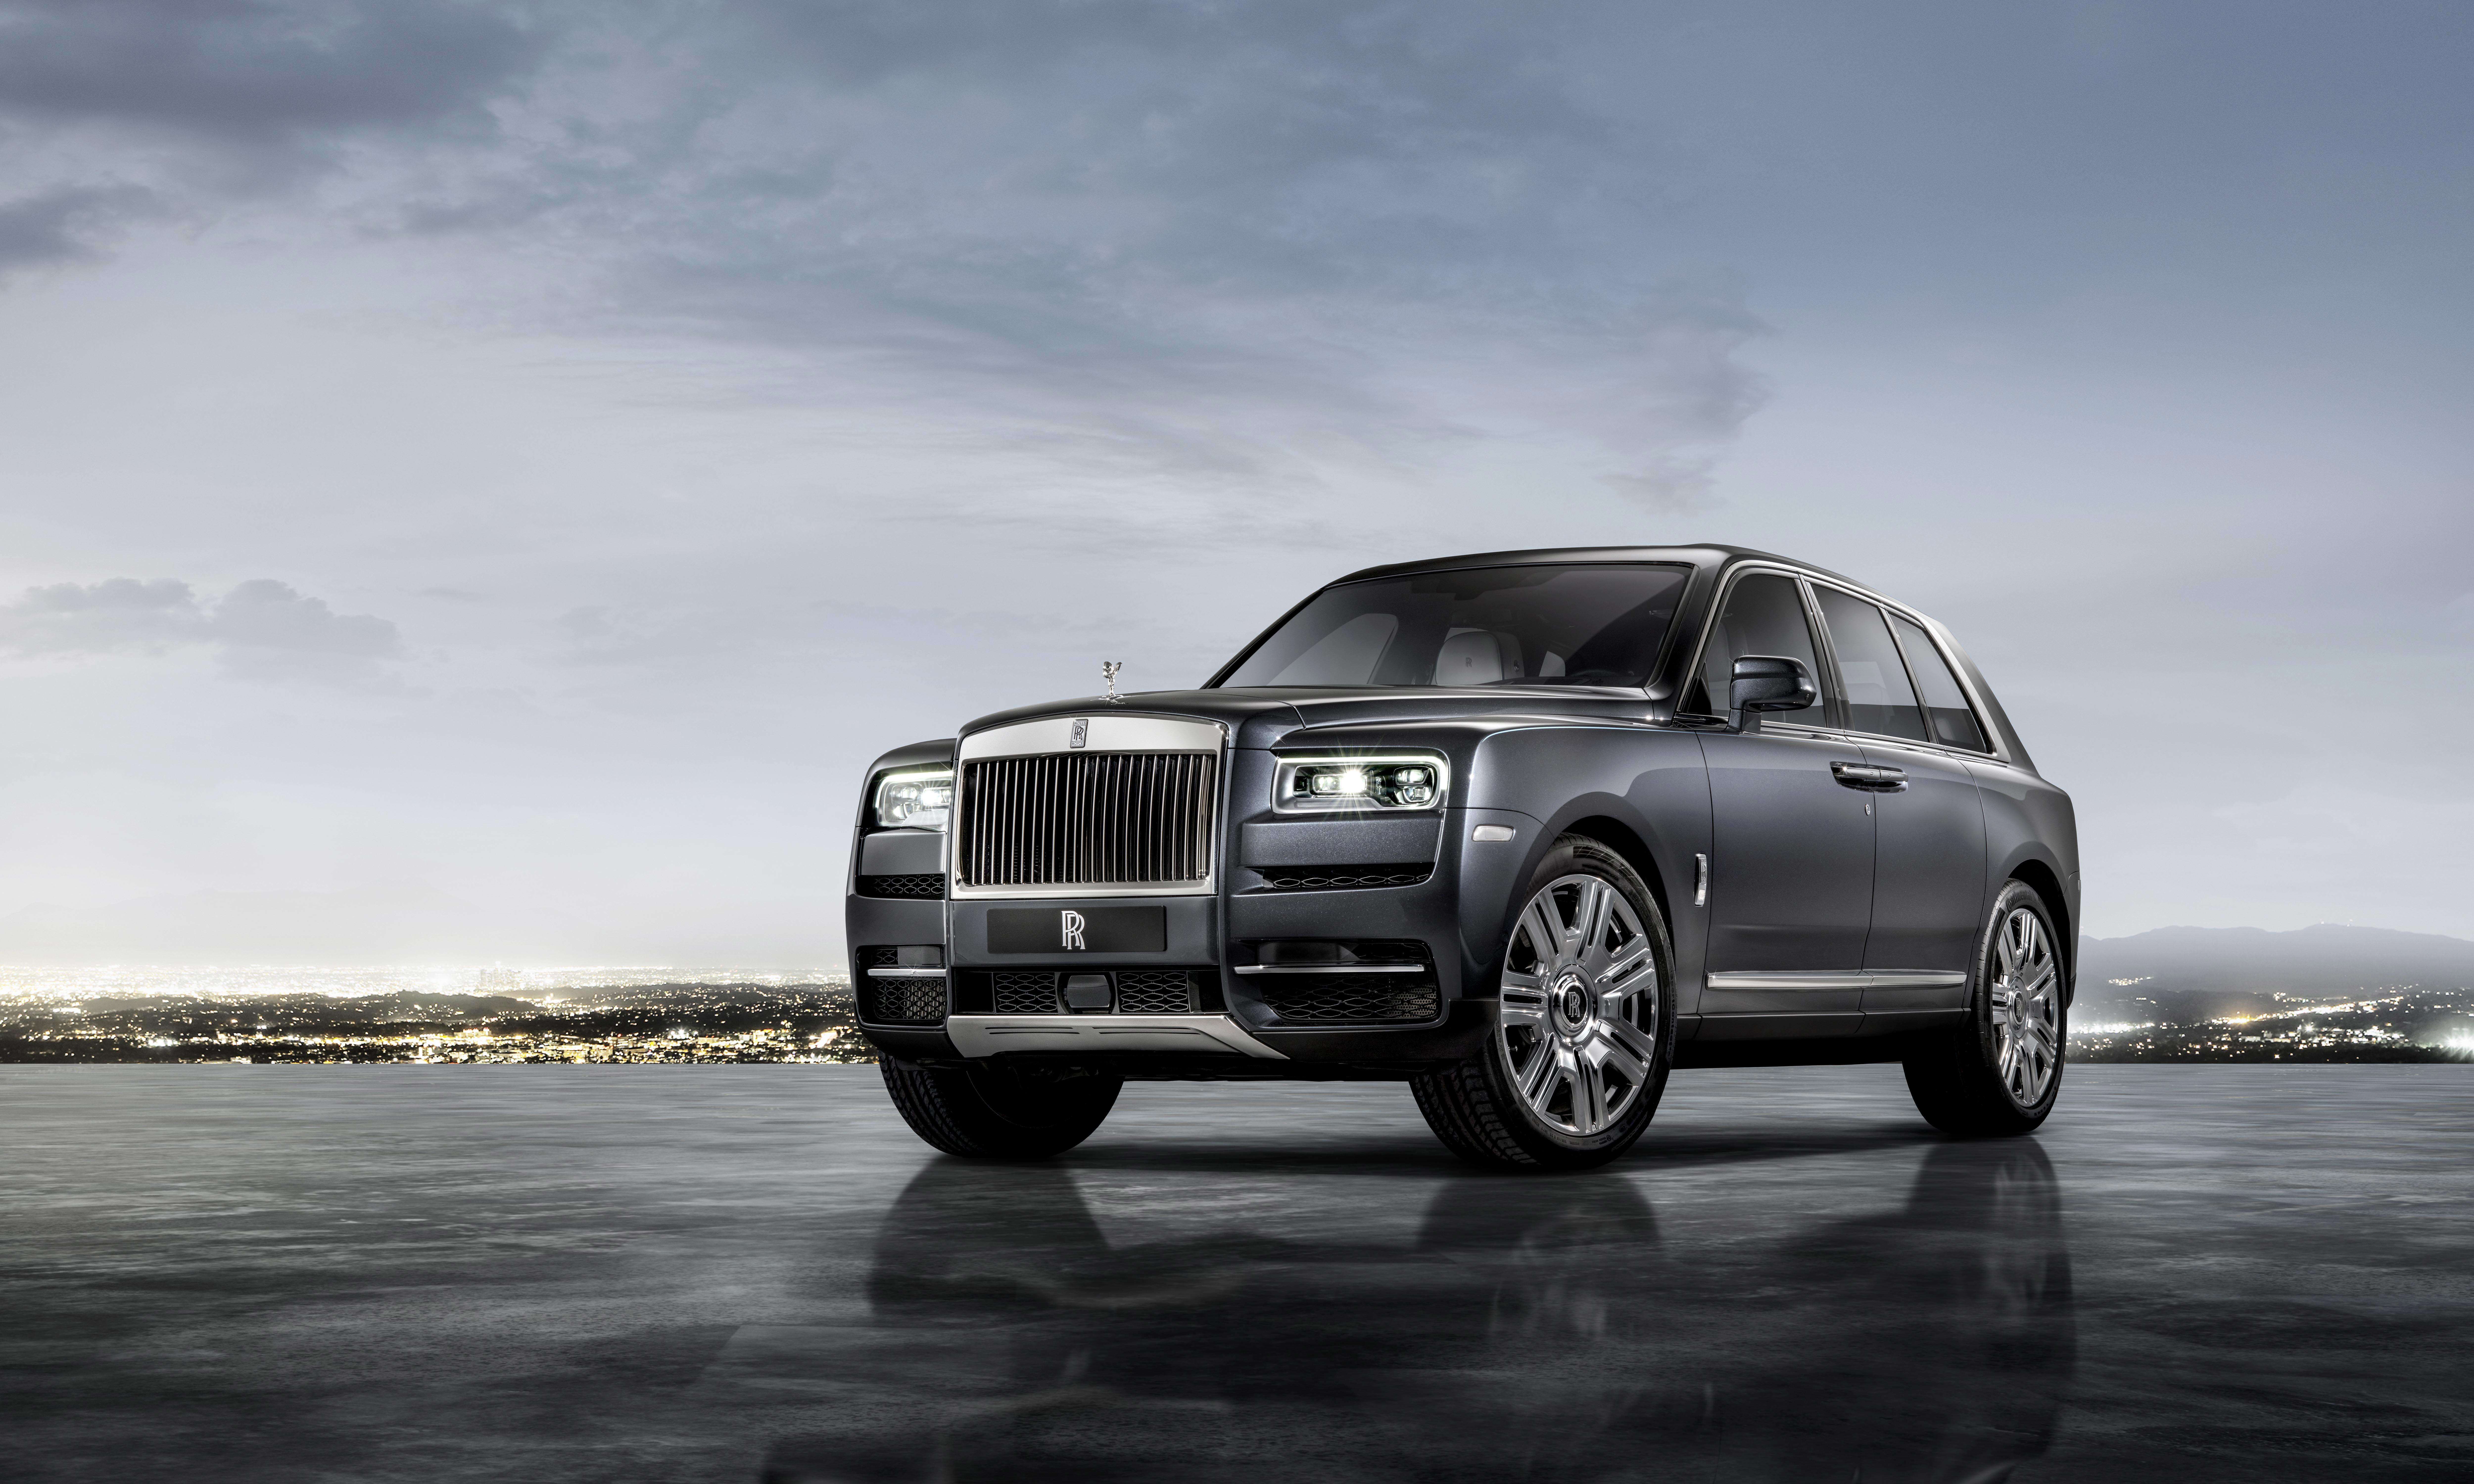 This Photo Provided By Bmw Group Shows The Rolls Royce Cullinan